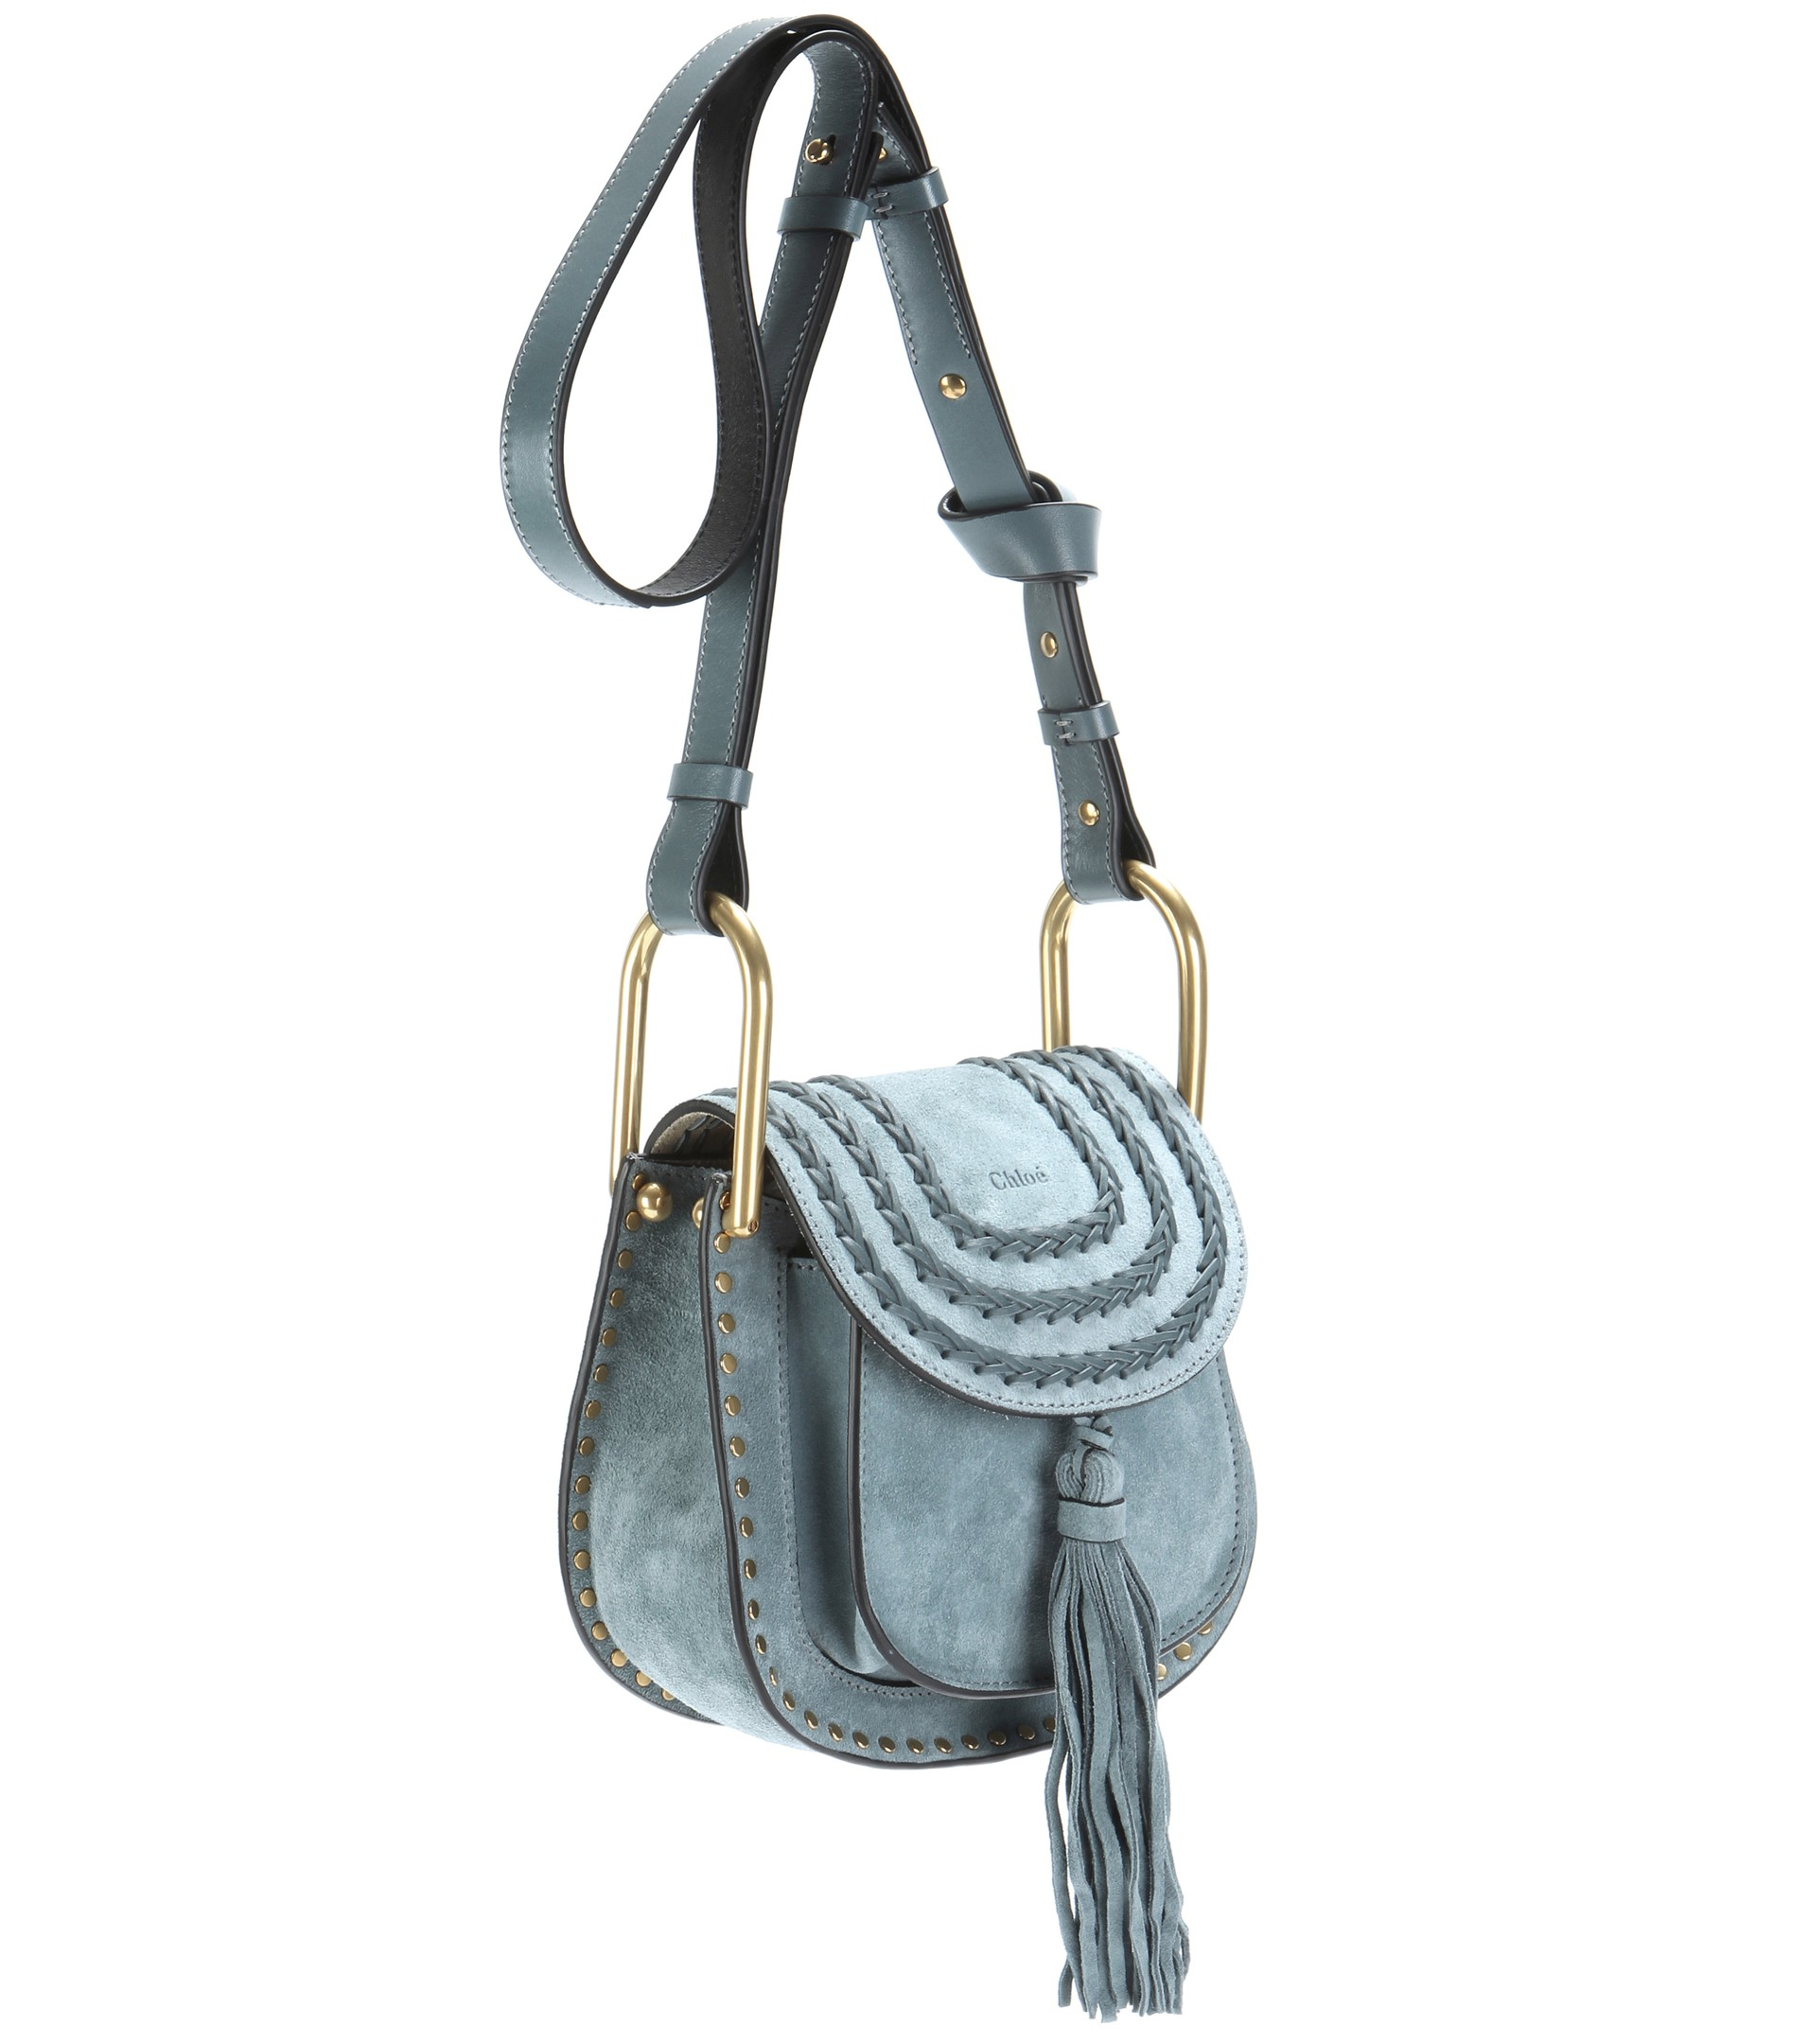 replica chloe shoes - chloe hudson small suede shoulder bag, wholesale chloe bags